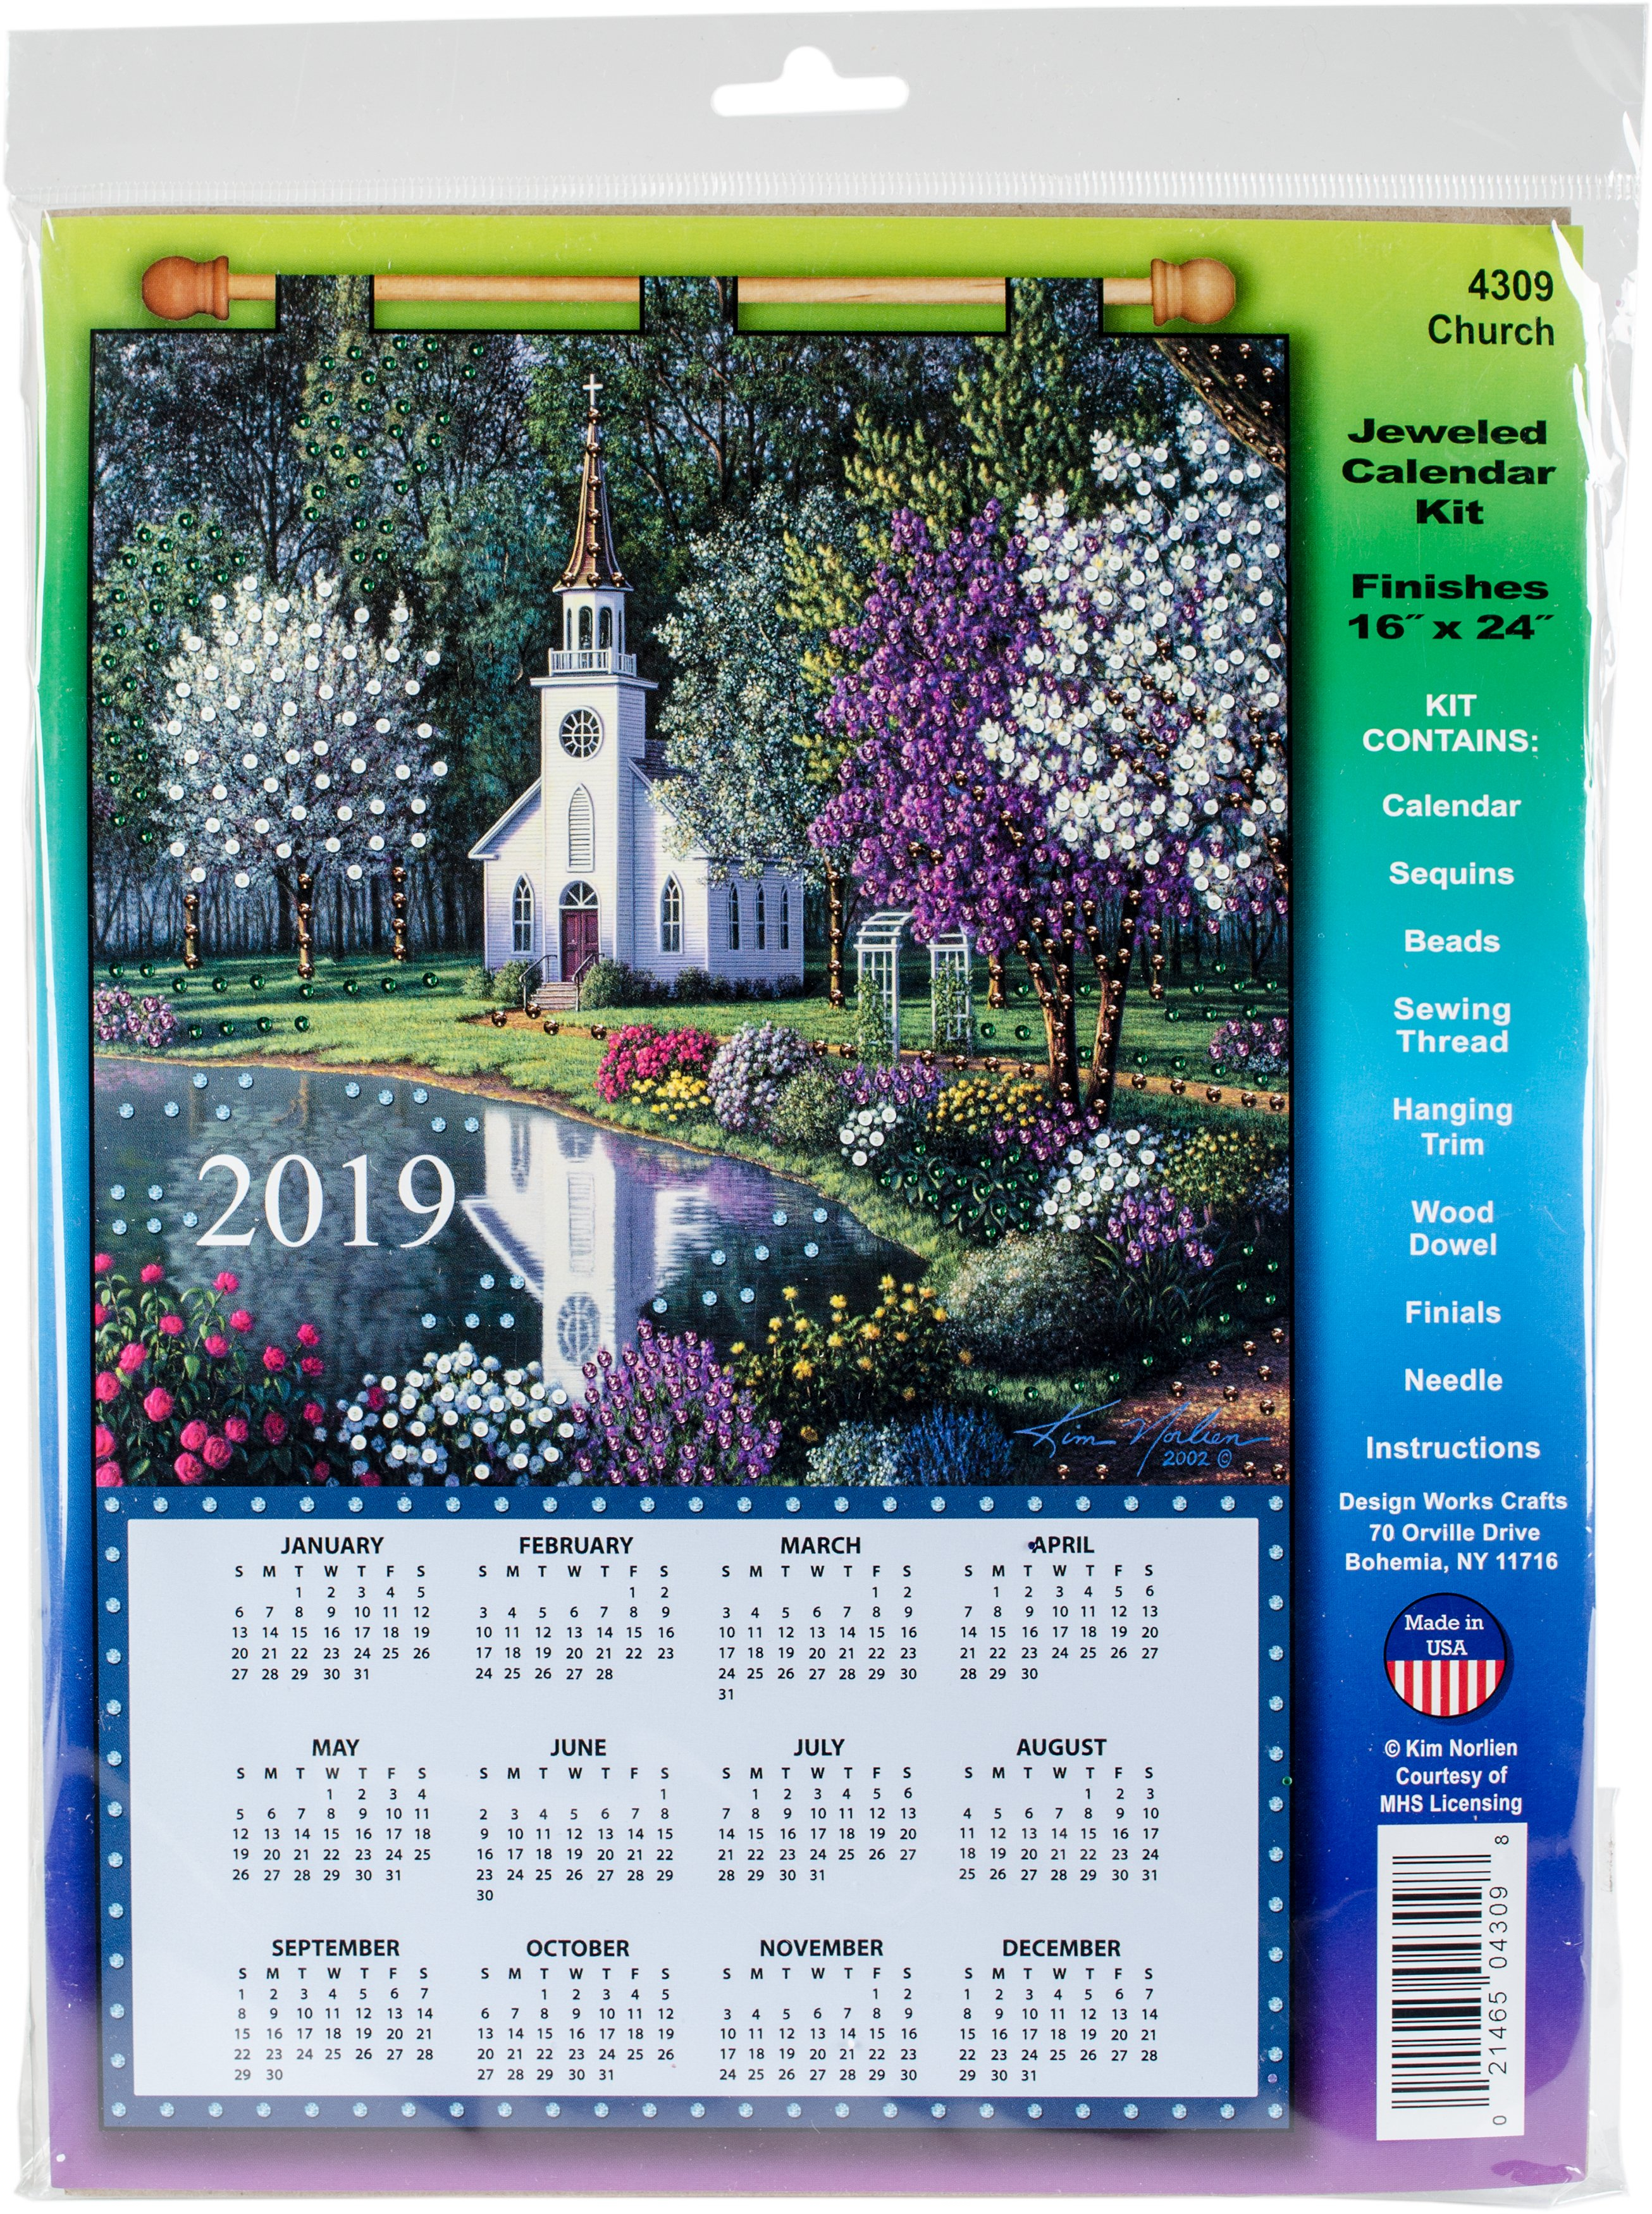 Design Works 2019 Calendar Felt Applique Kit-Church | Walmart Canada 544 Calendar 2019